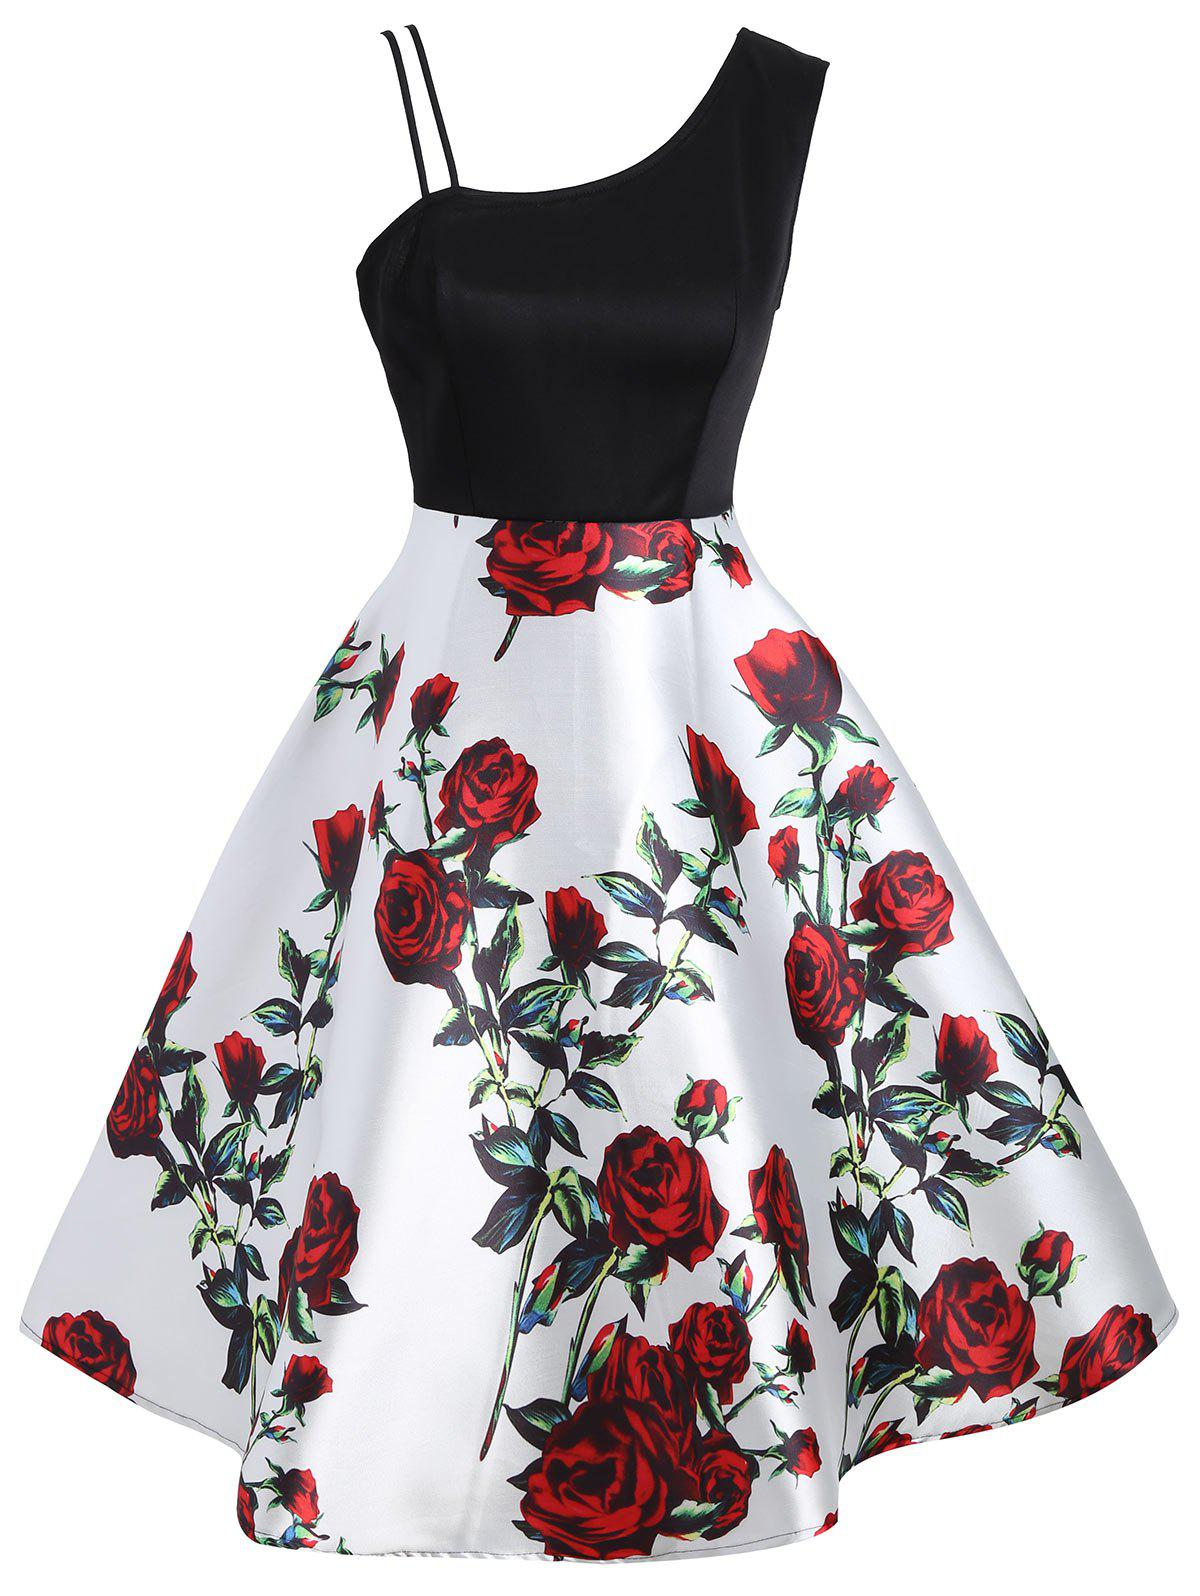 Hot A Line Skew Neck Floral Print Dress